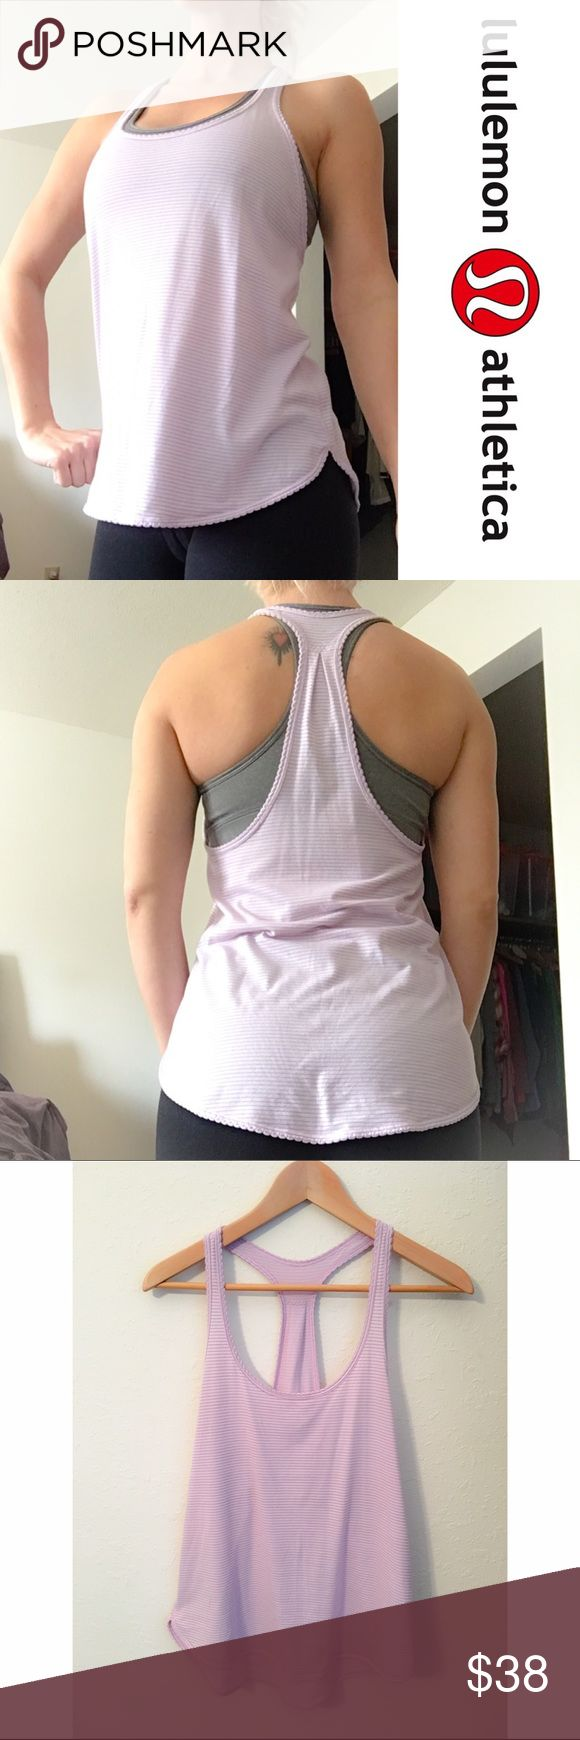 🌸Lululemon Lilac Racerback Tank🌸 A light airy comfortable fit. I have removed the inside label but it's a size 4. Well worn but no defects to it. I also have this same tank for sale in my closet in a mint color. I'm only looking to sell at this time so sorry but no trades. My listing price is firm on this particular item unless bundled for a bundle discount. lululemon athletica Tops Tank Tops